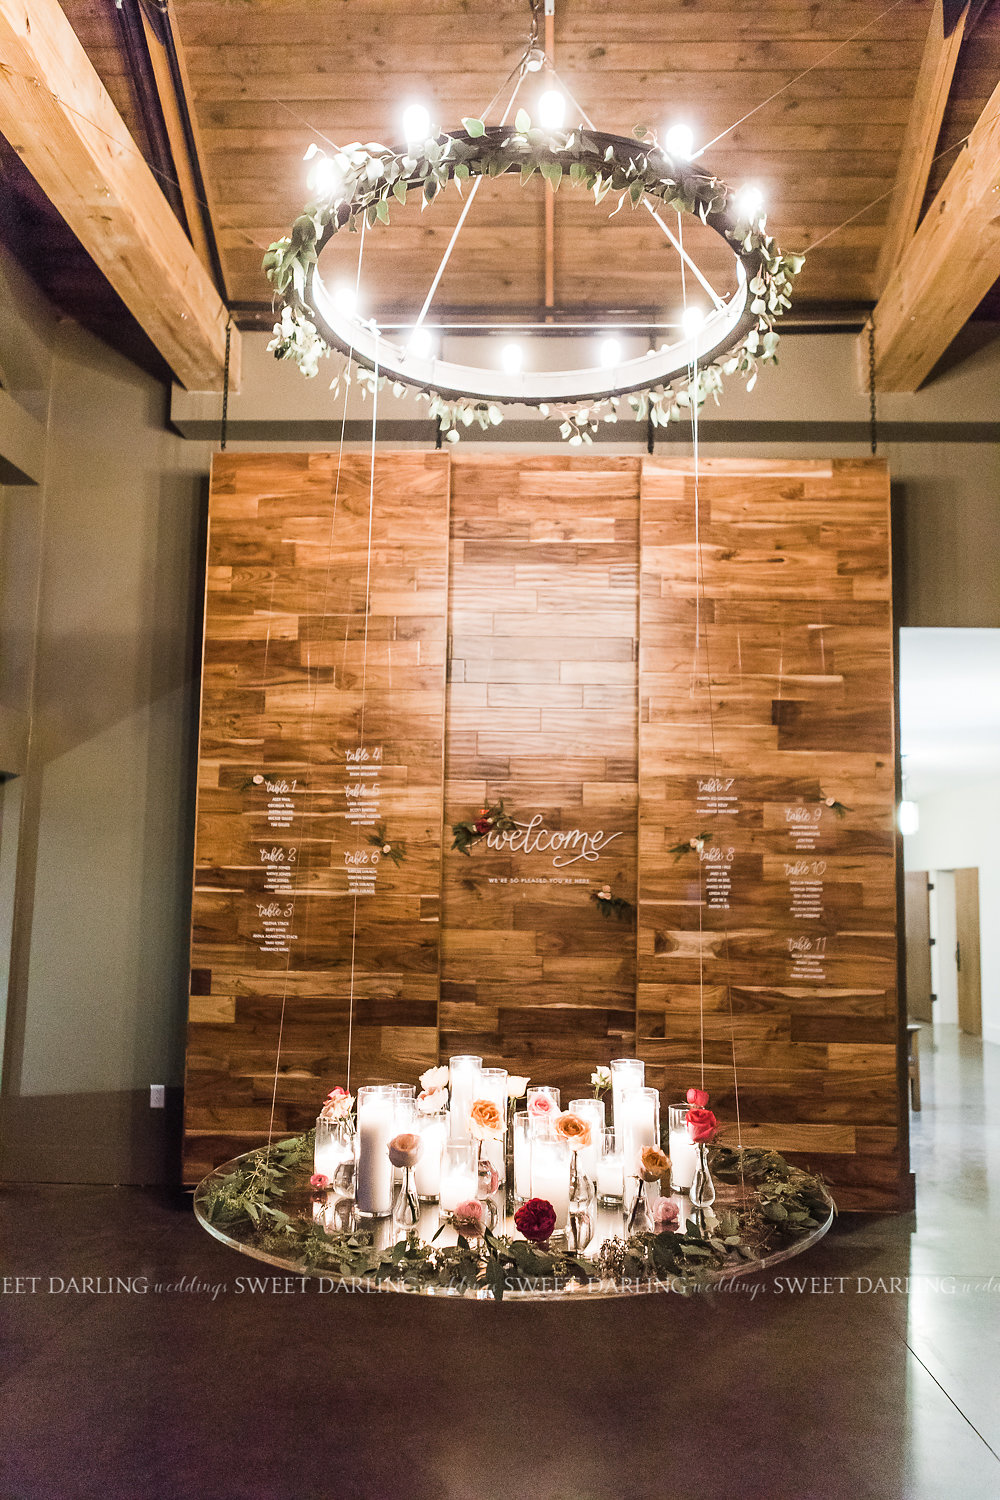 This amazing, suspended acrylic table welcomed guests.  Hung from the high beams of the foyer, a beautiful gathering of candles, single stem bud vases, and seeded eucalyptus set off a welcoming glow. The amazing hand lettering of Emily at  Dash/wood  was featured on the acrylic welcome and seating chart.